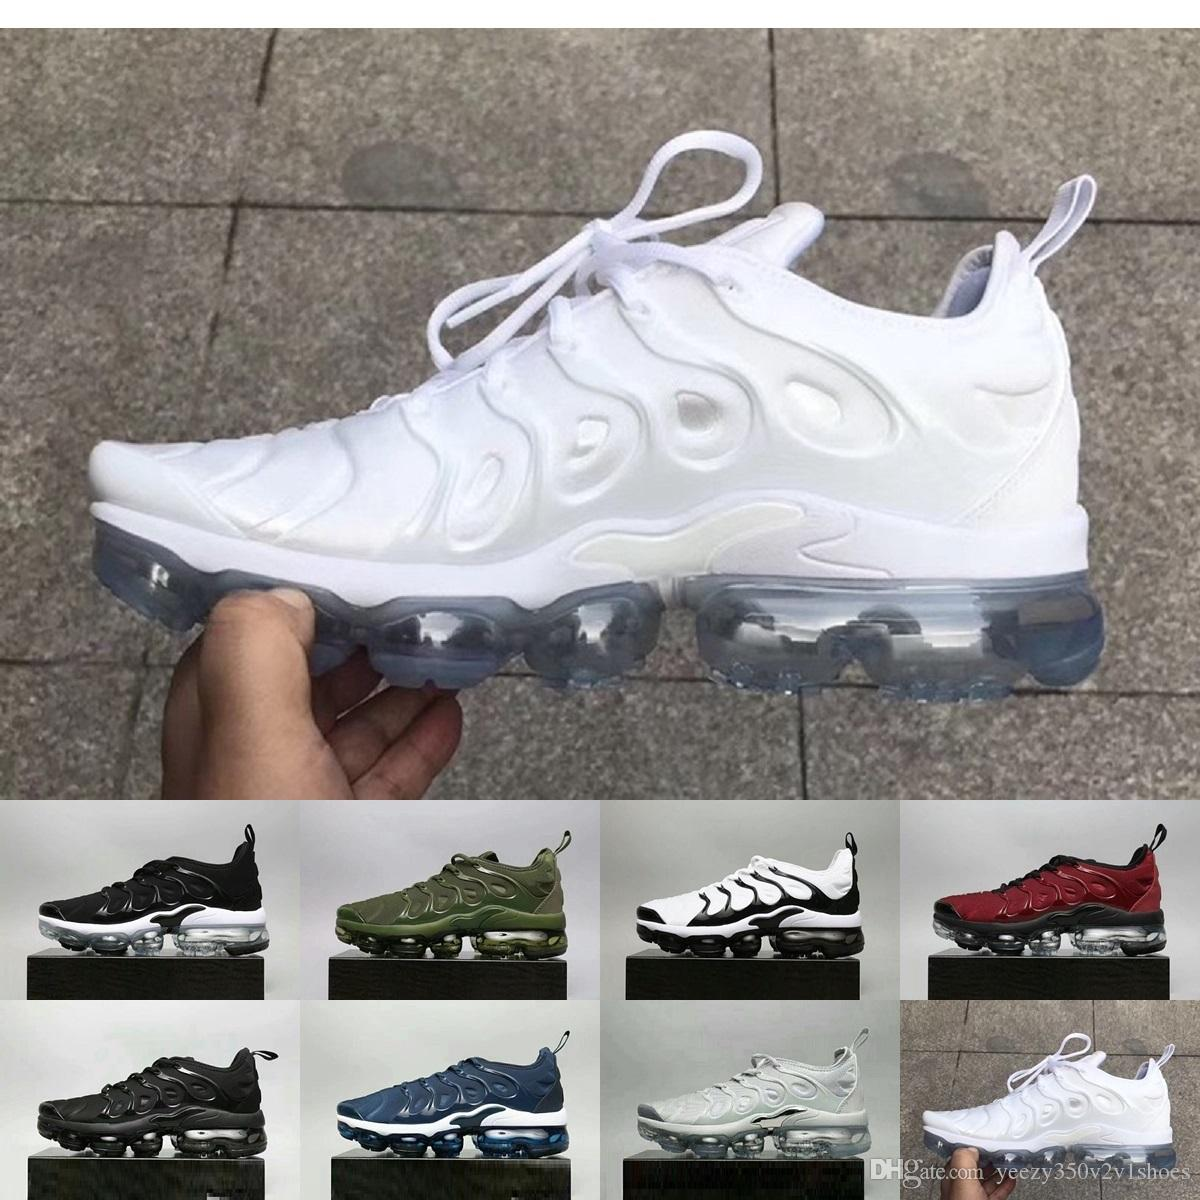 03 2018 Vapormax TN Plus Men Casual Triple Black Olive Metallic White Silver Sport Athletic Sneakers Hiking Jogging Shoes 40-45 eastbay sale online fashion Style online tfuaym9H